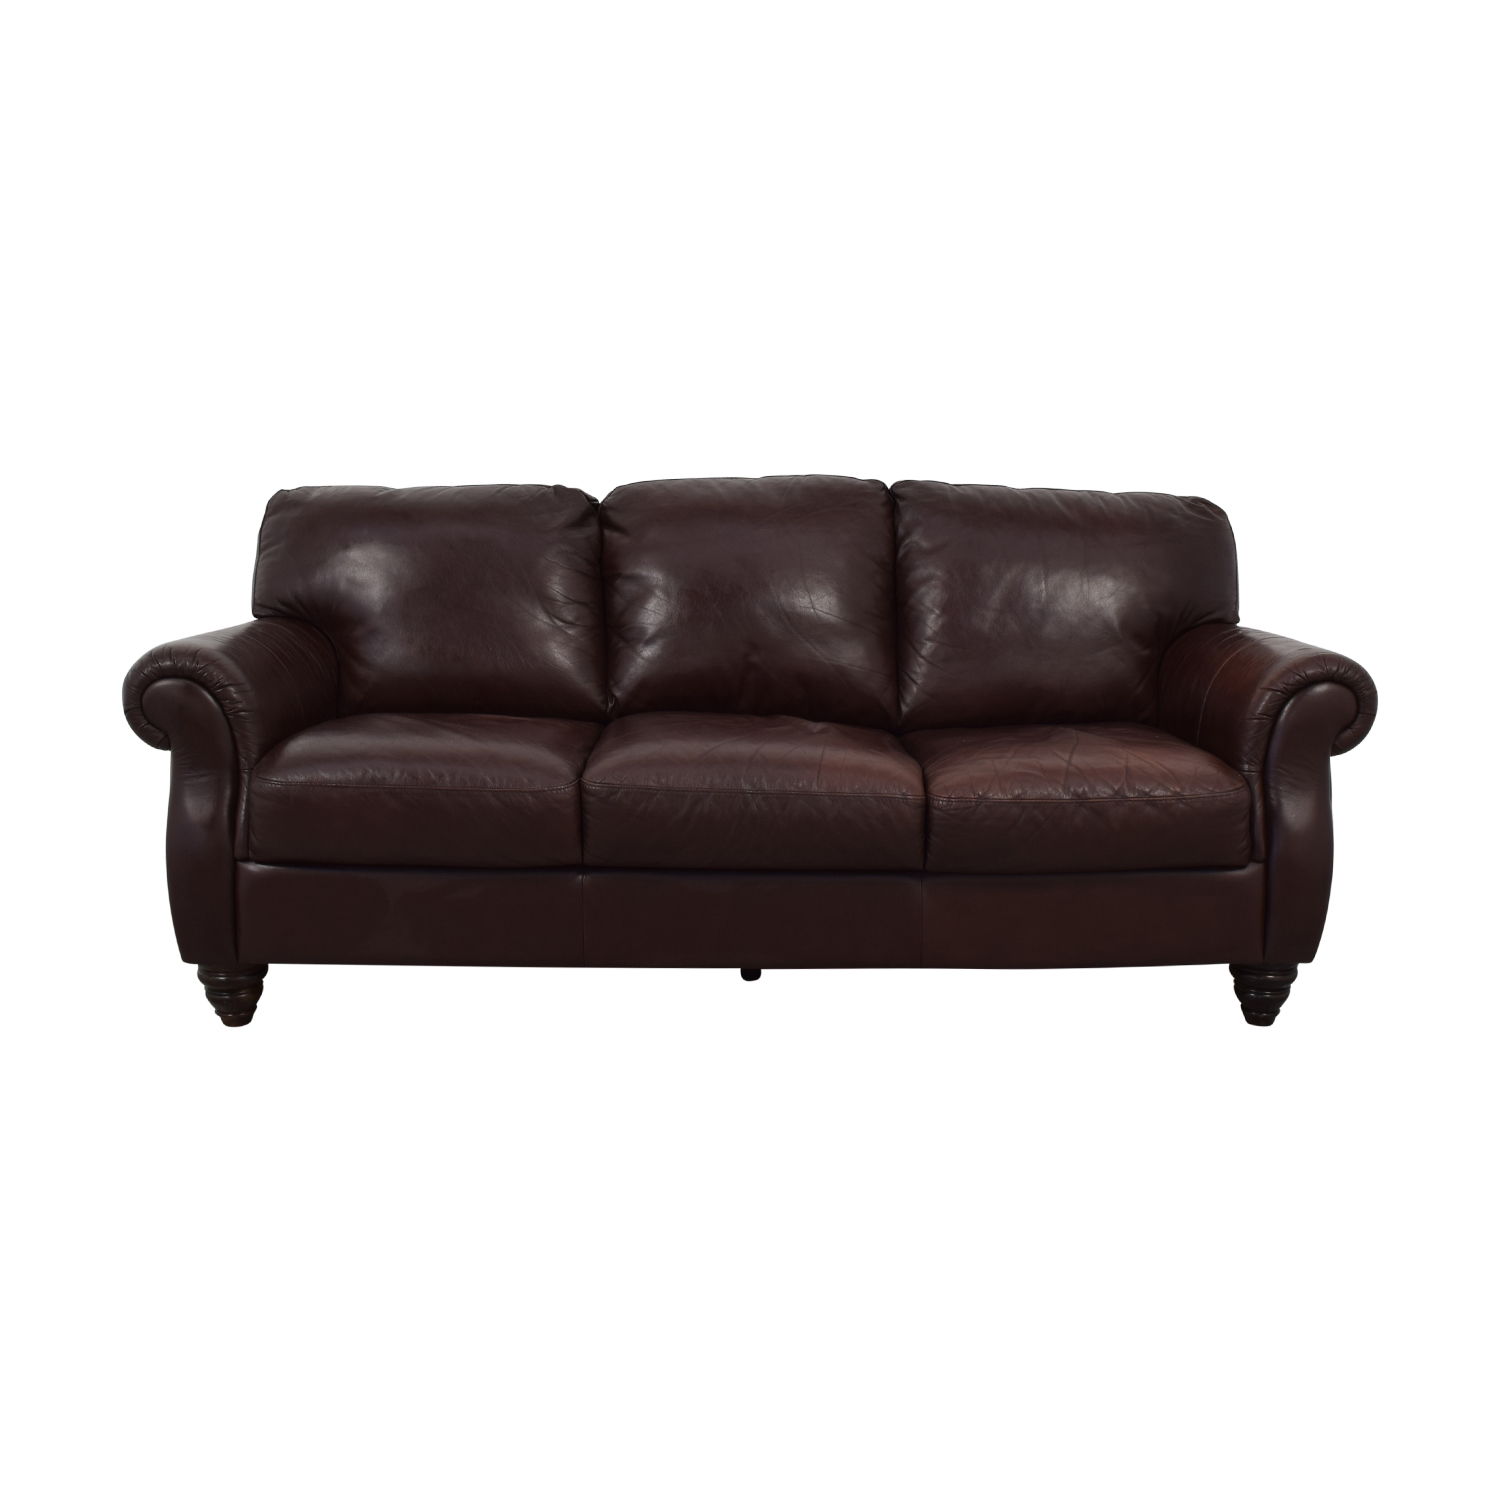 Italsofa Brown Three-Cushion Sofa / Classic Sofas